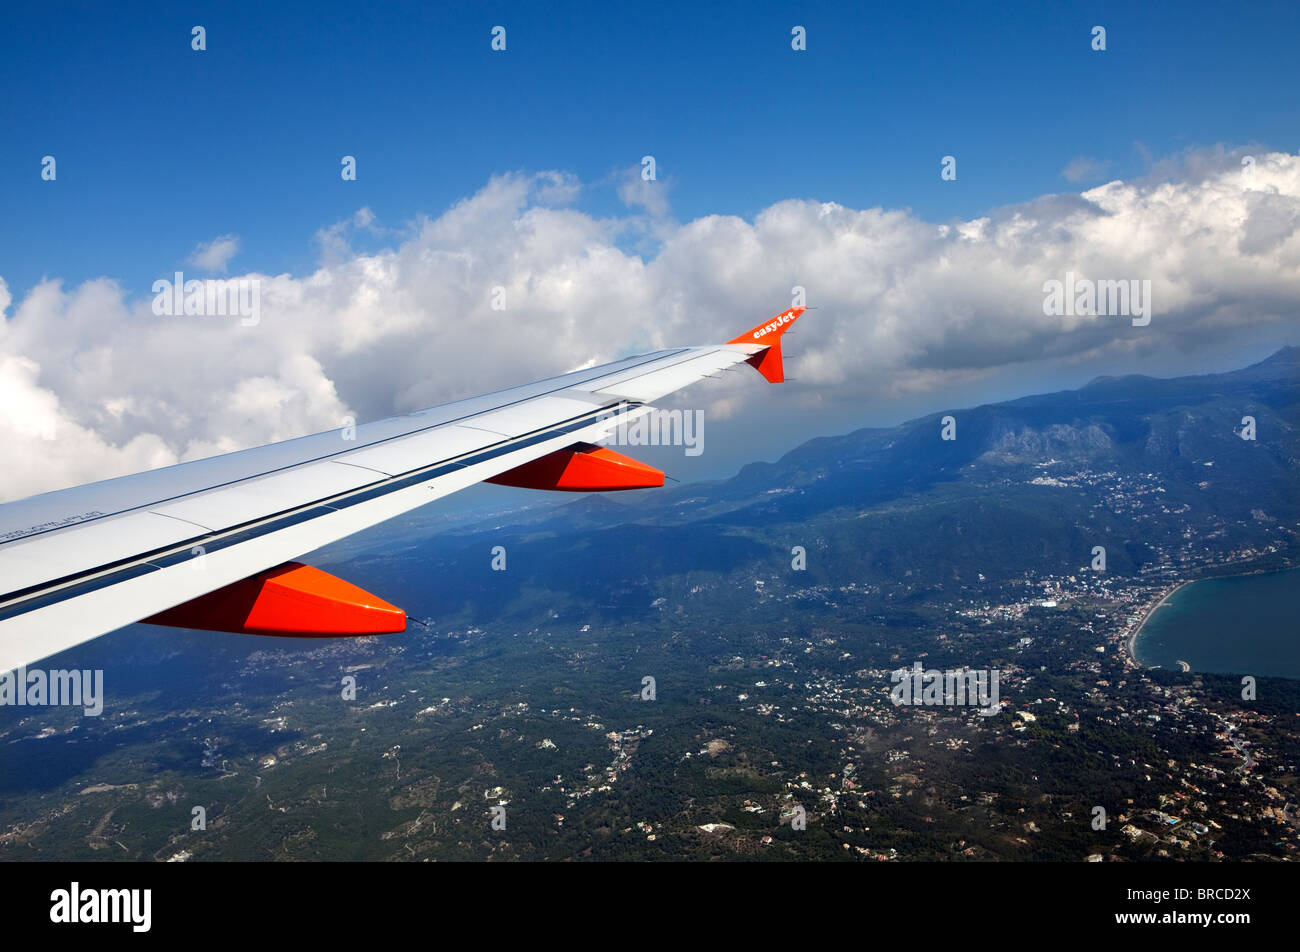 Wing of EasyJet aircarft during flight - Stock Image